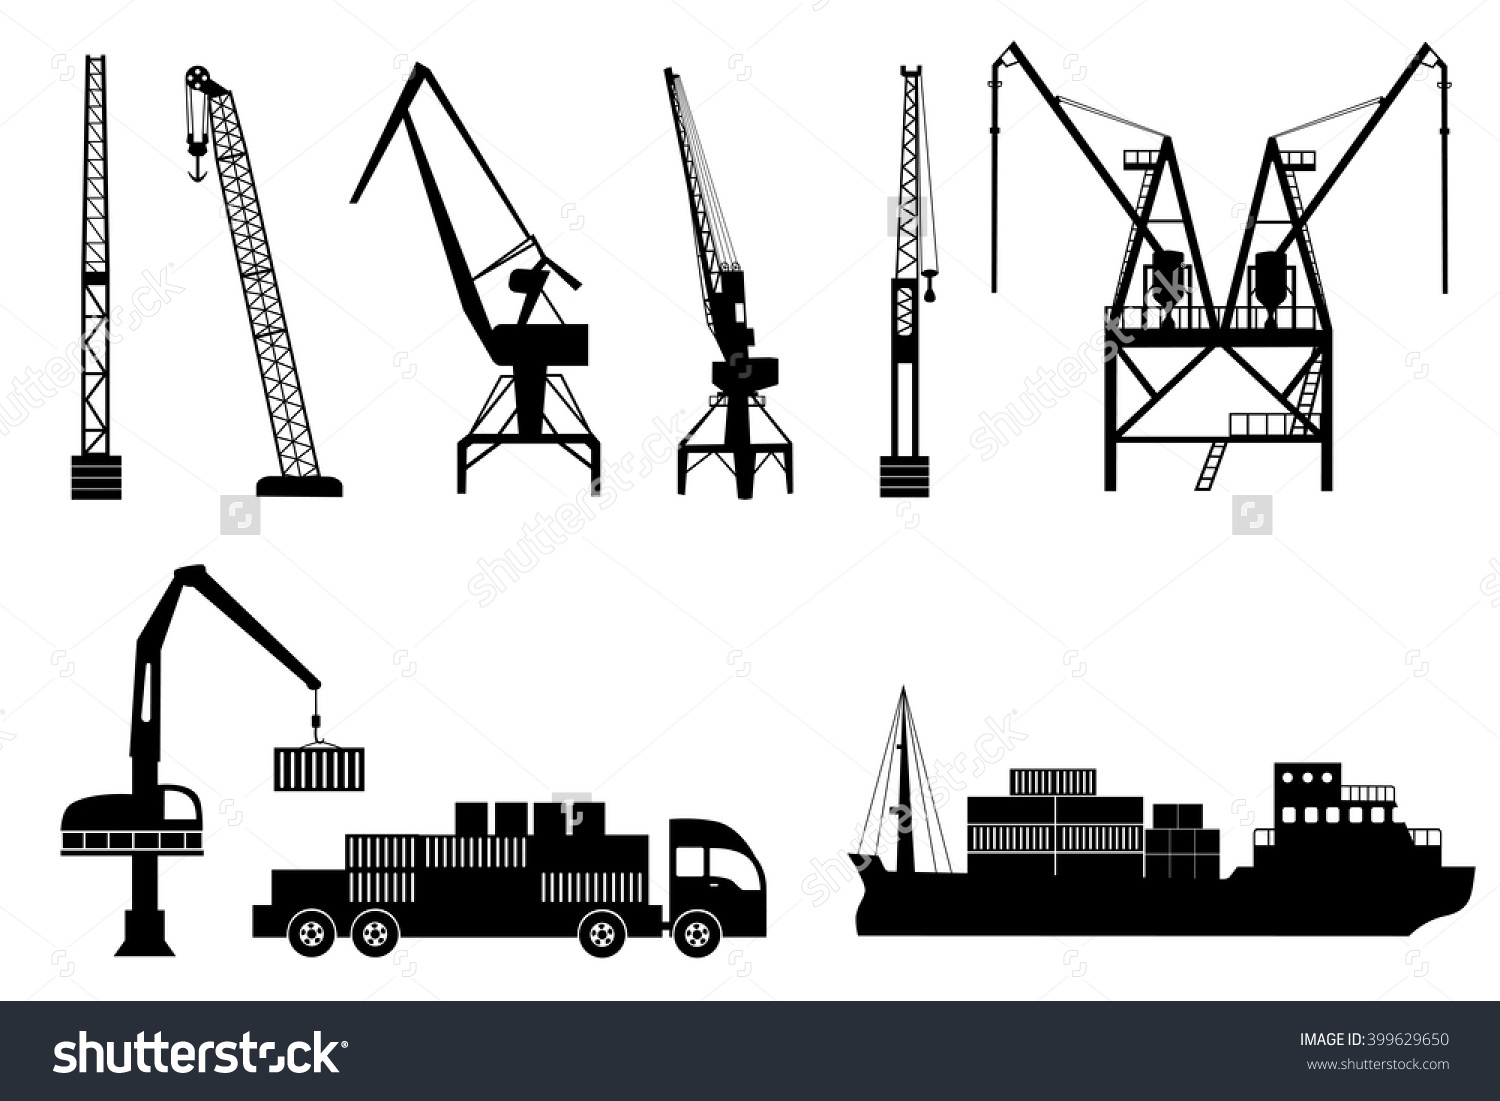 Silhouettes Loading Lifting Harbor Cranes Truck Stock Vector.